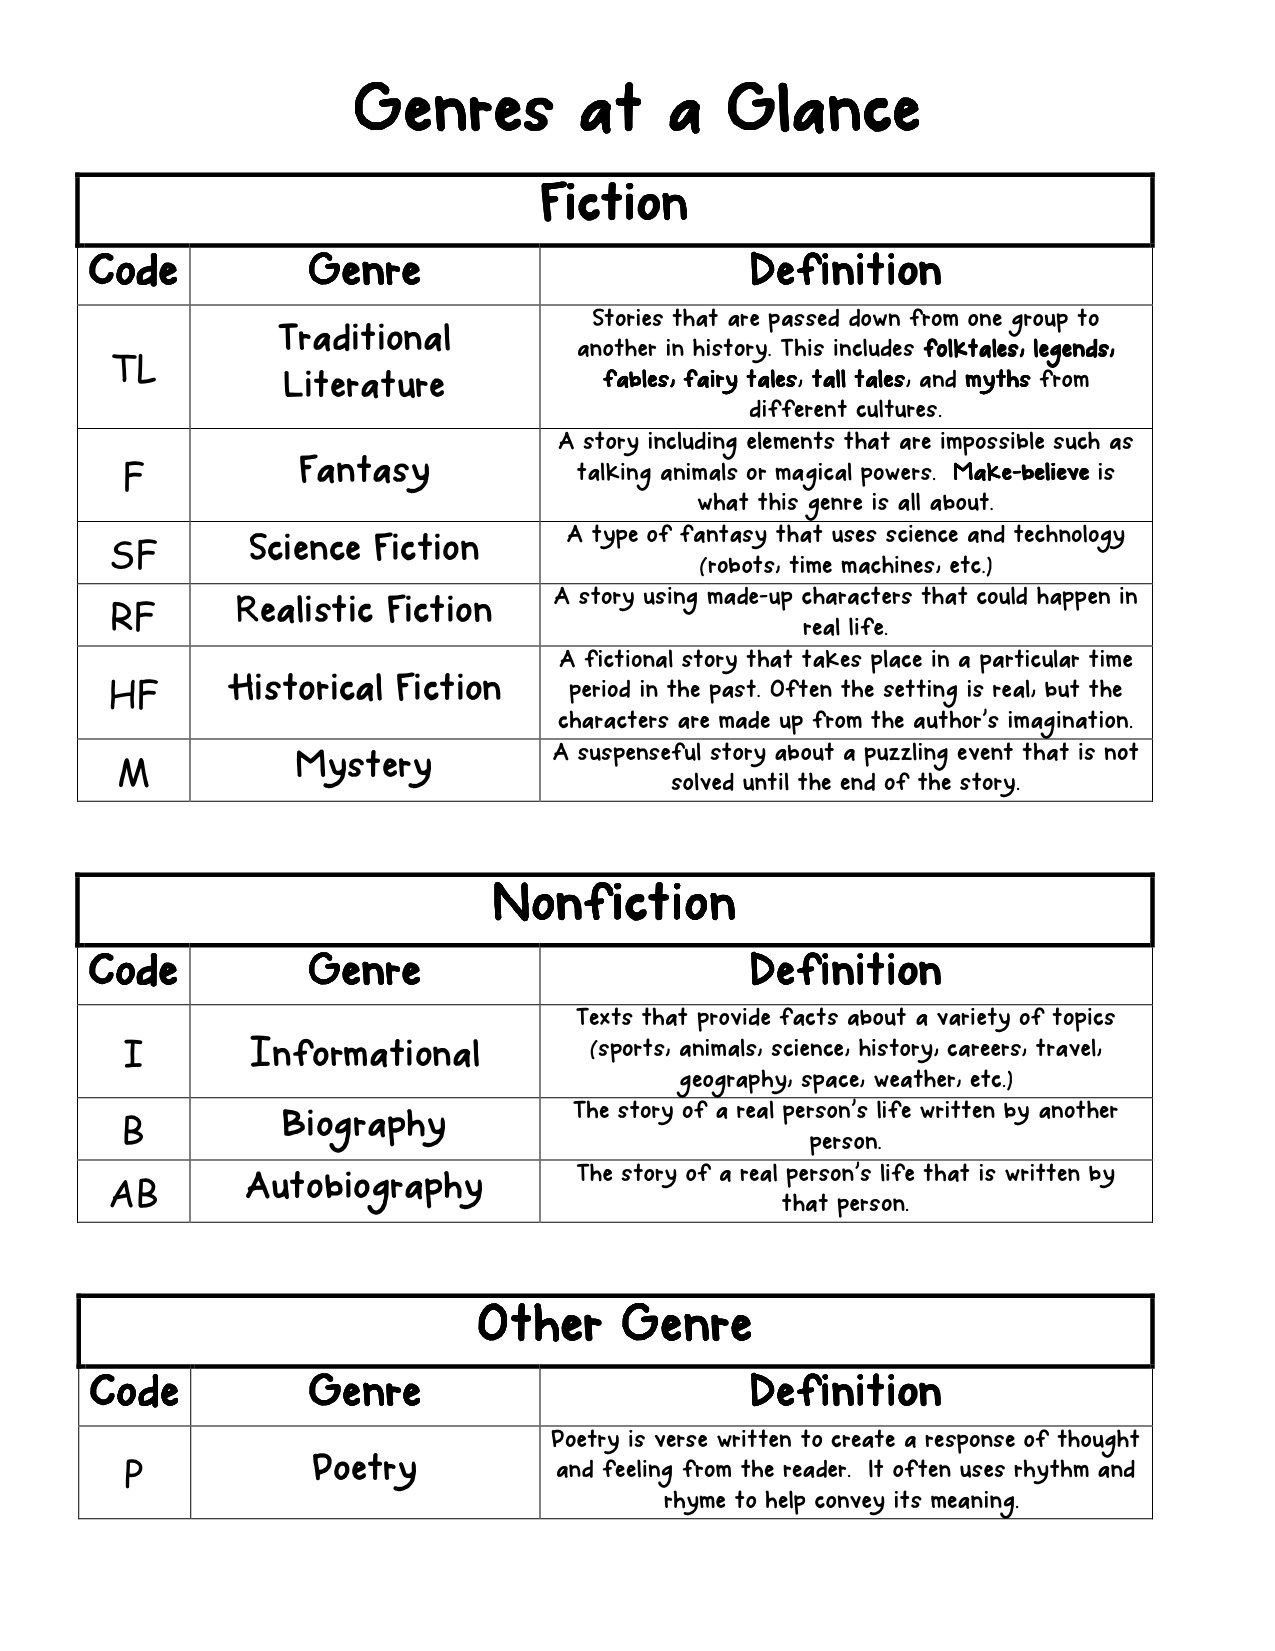 hight resolution of Genre Worksheet 3rd Grade Genres at A Glance for Reader S Notebook   40  book challenge